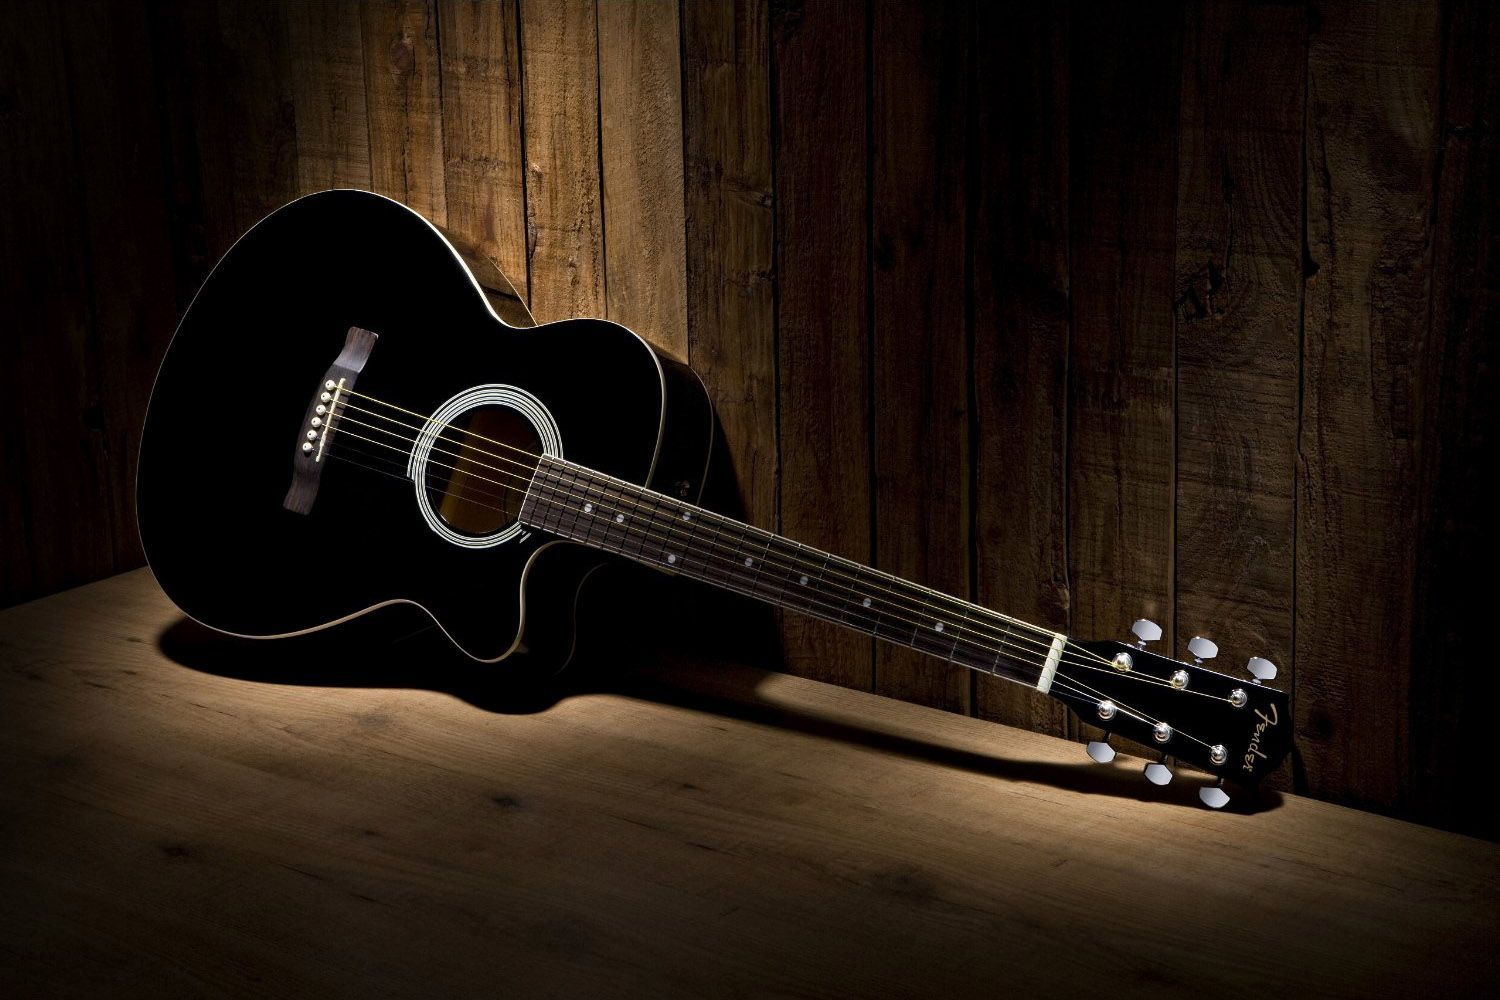 Black Acoustic Guitar Wallpaper